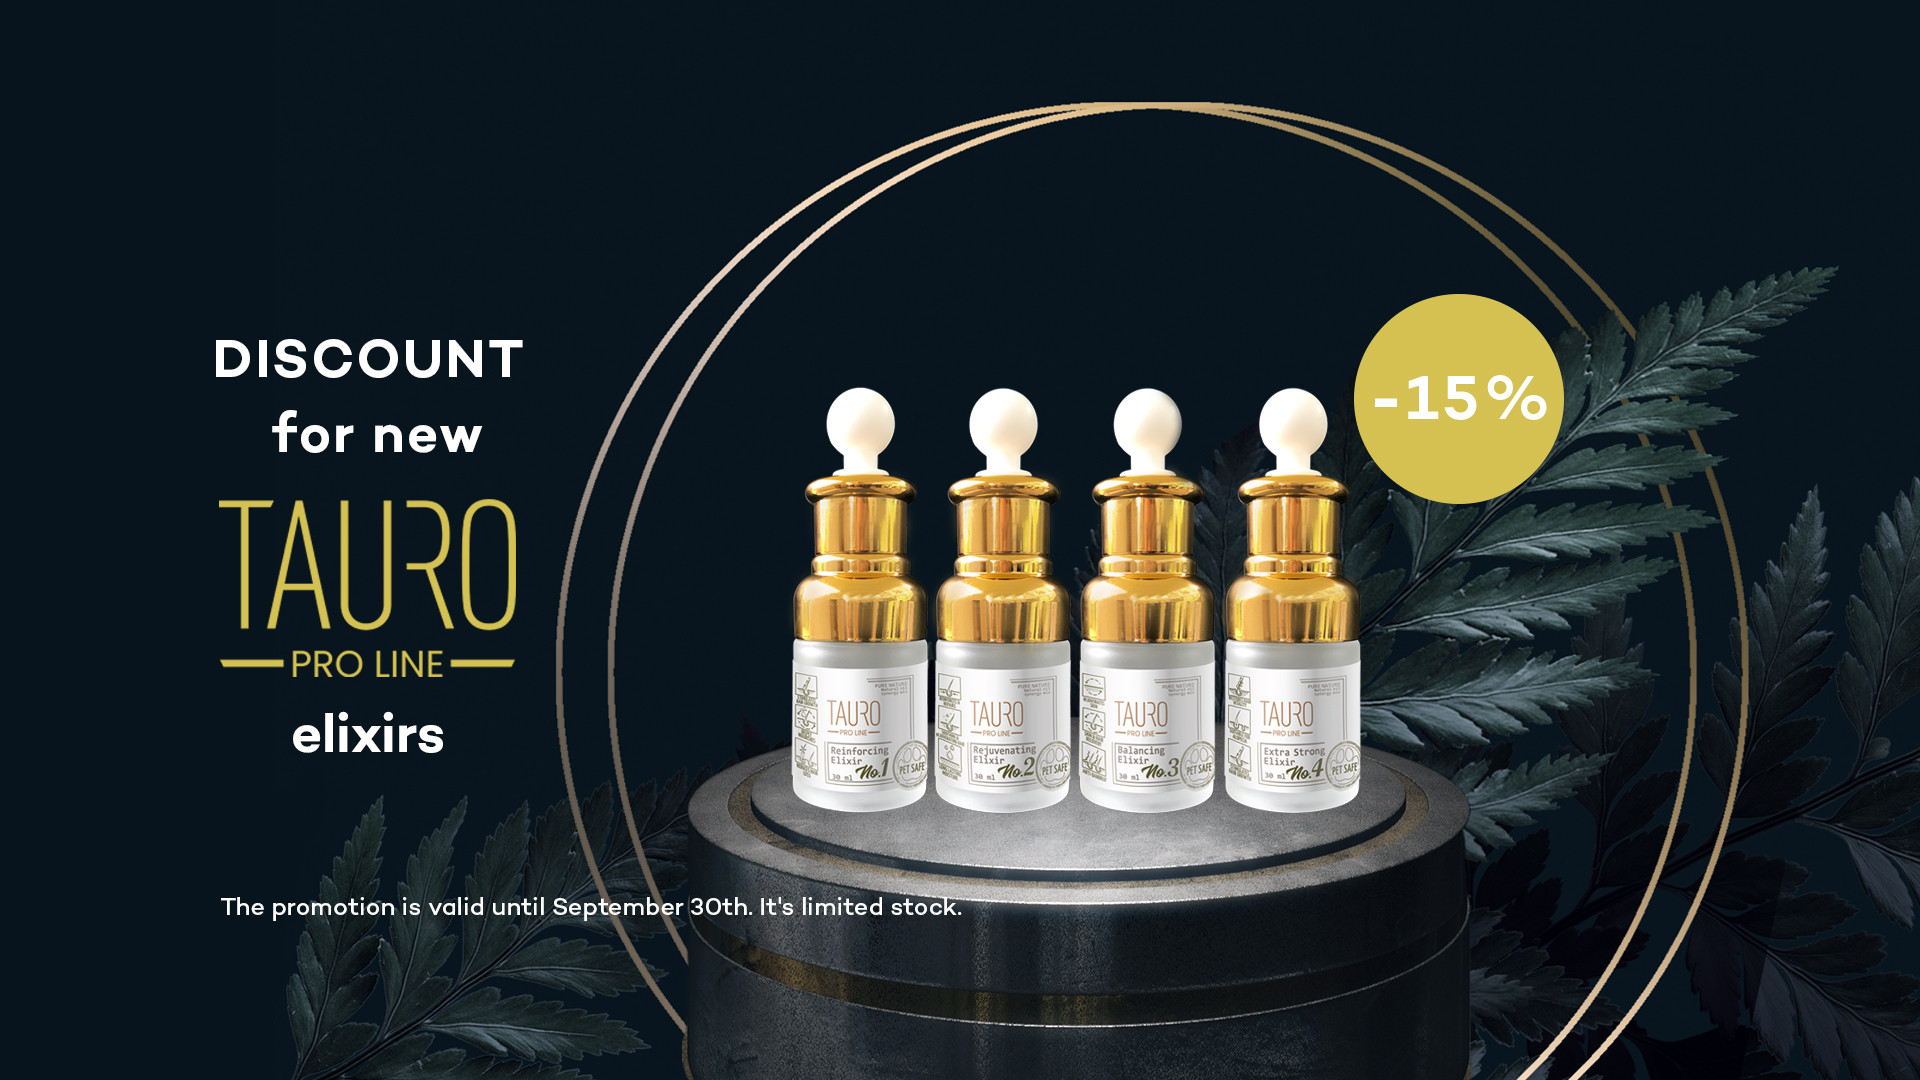 15% discount  for new Tauro Pro Line elixirs